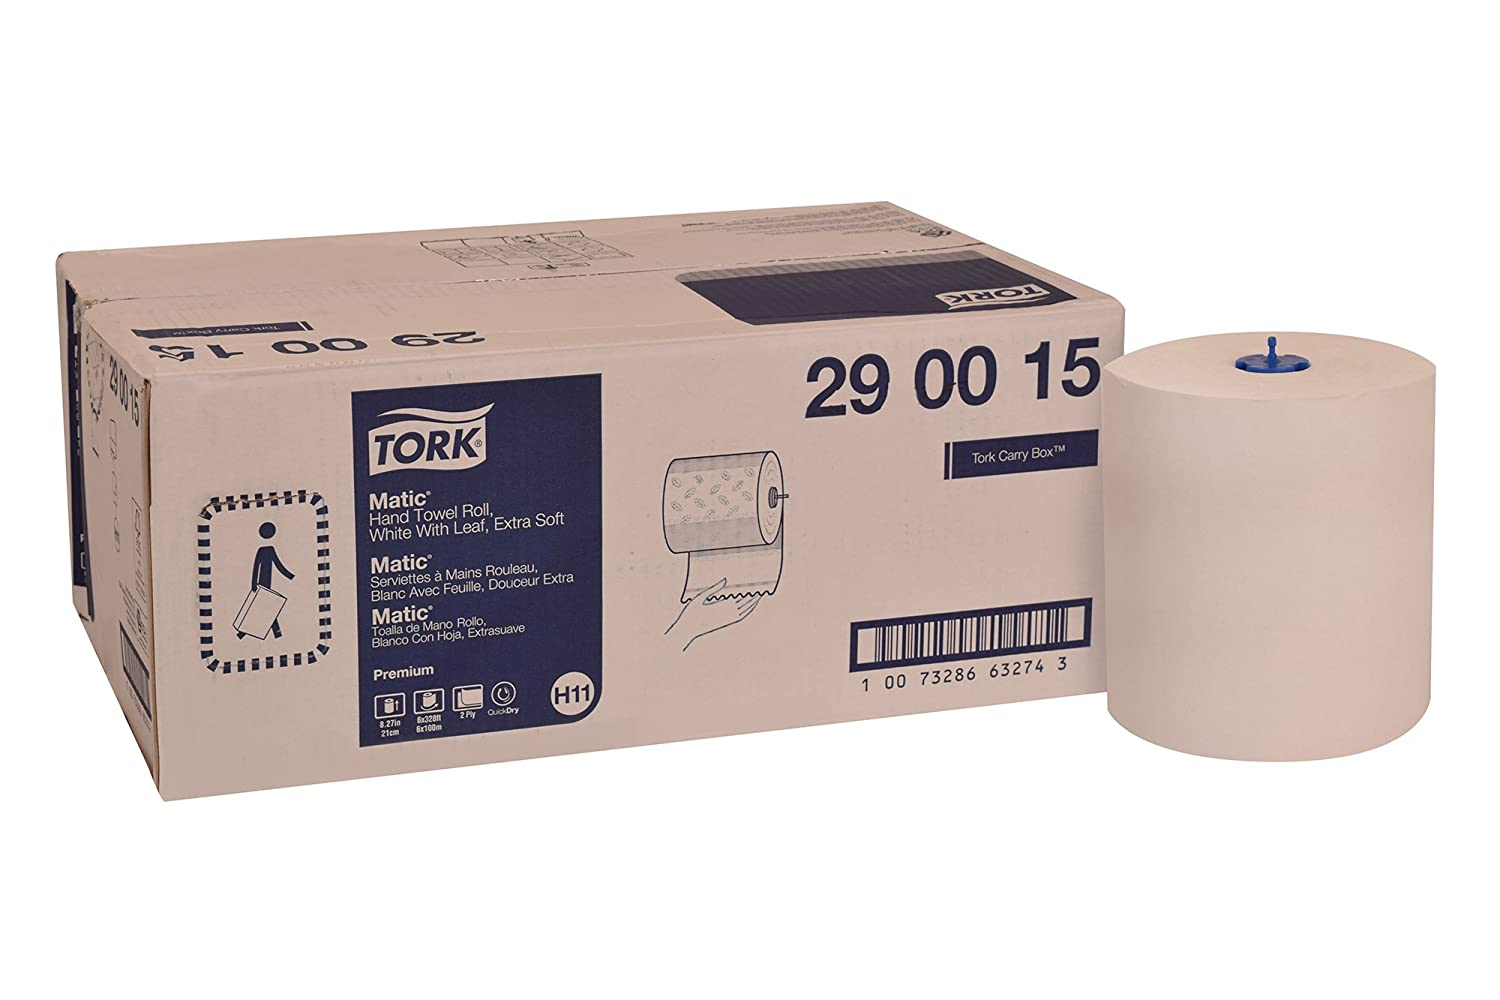 Tork 290015 Premium Extra Soft Matic Paper Hand Towel Roll, 2-Ply, 8.27